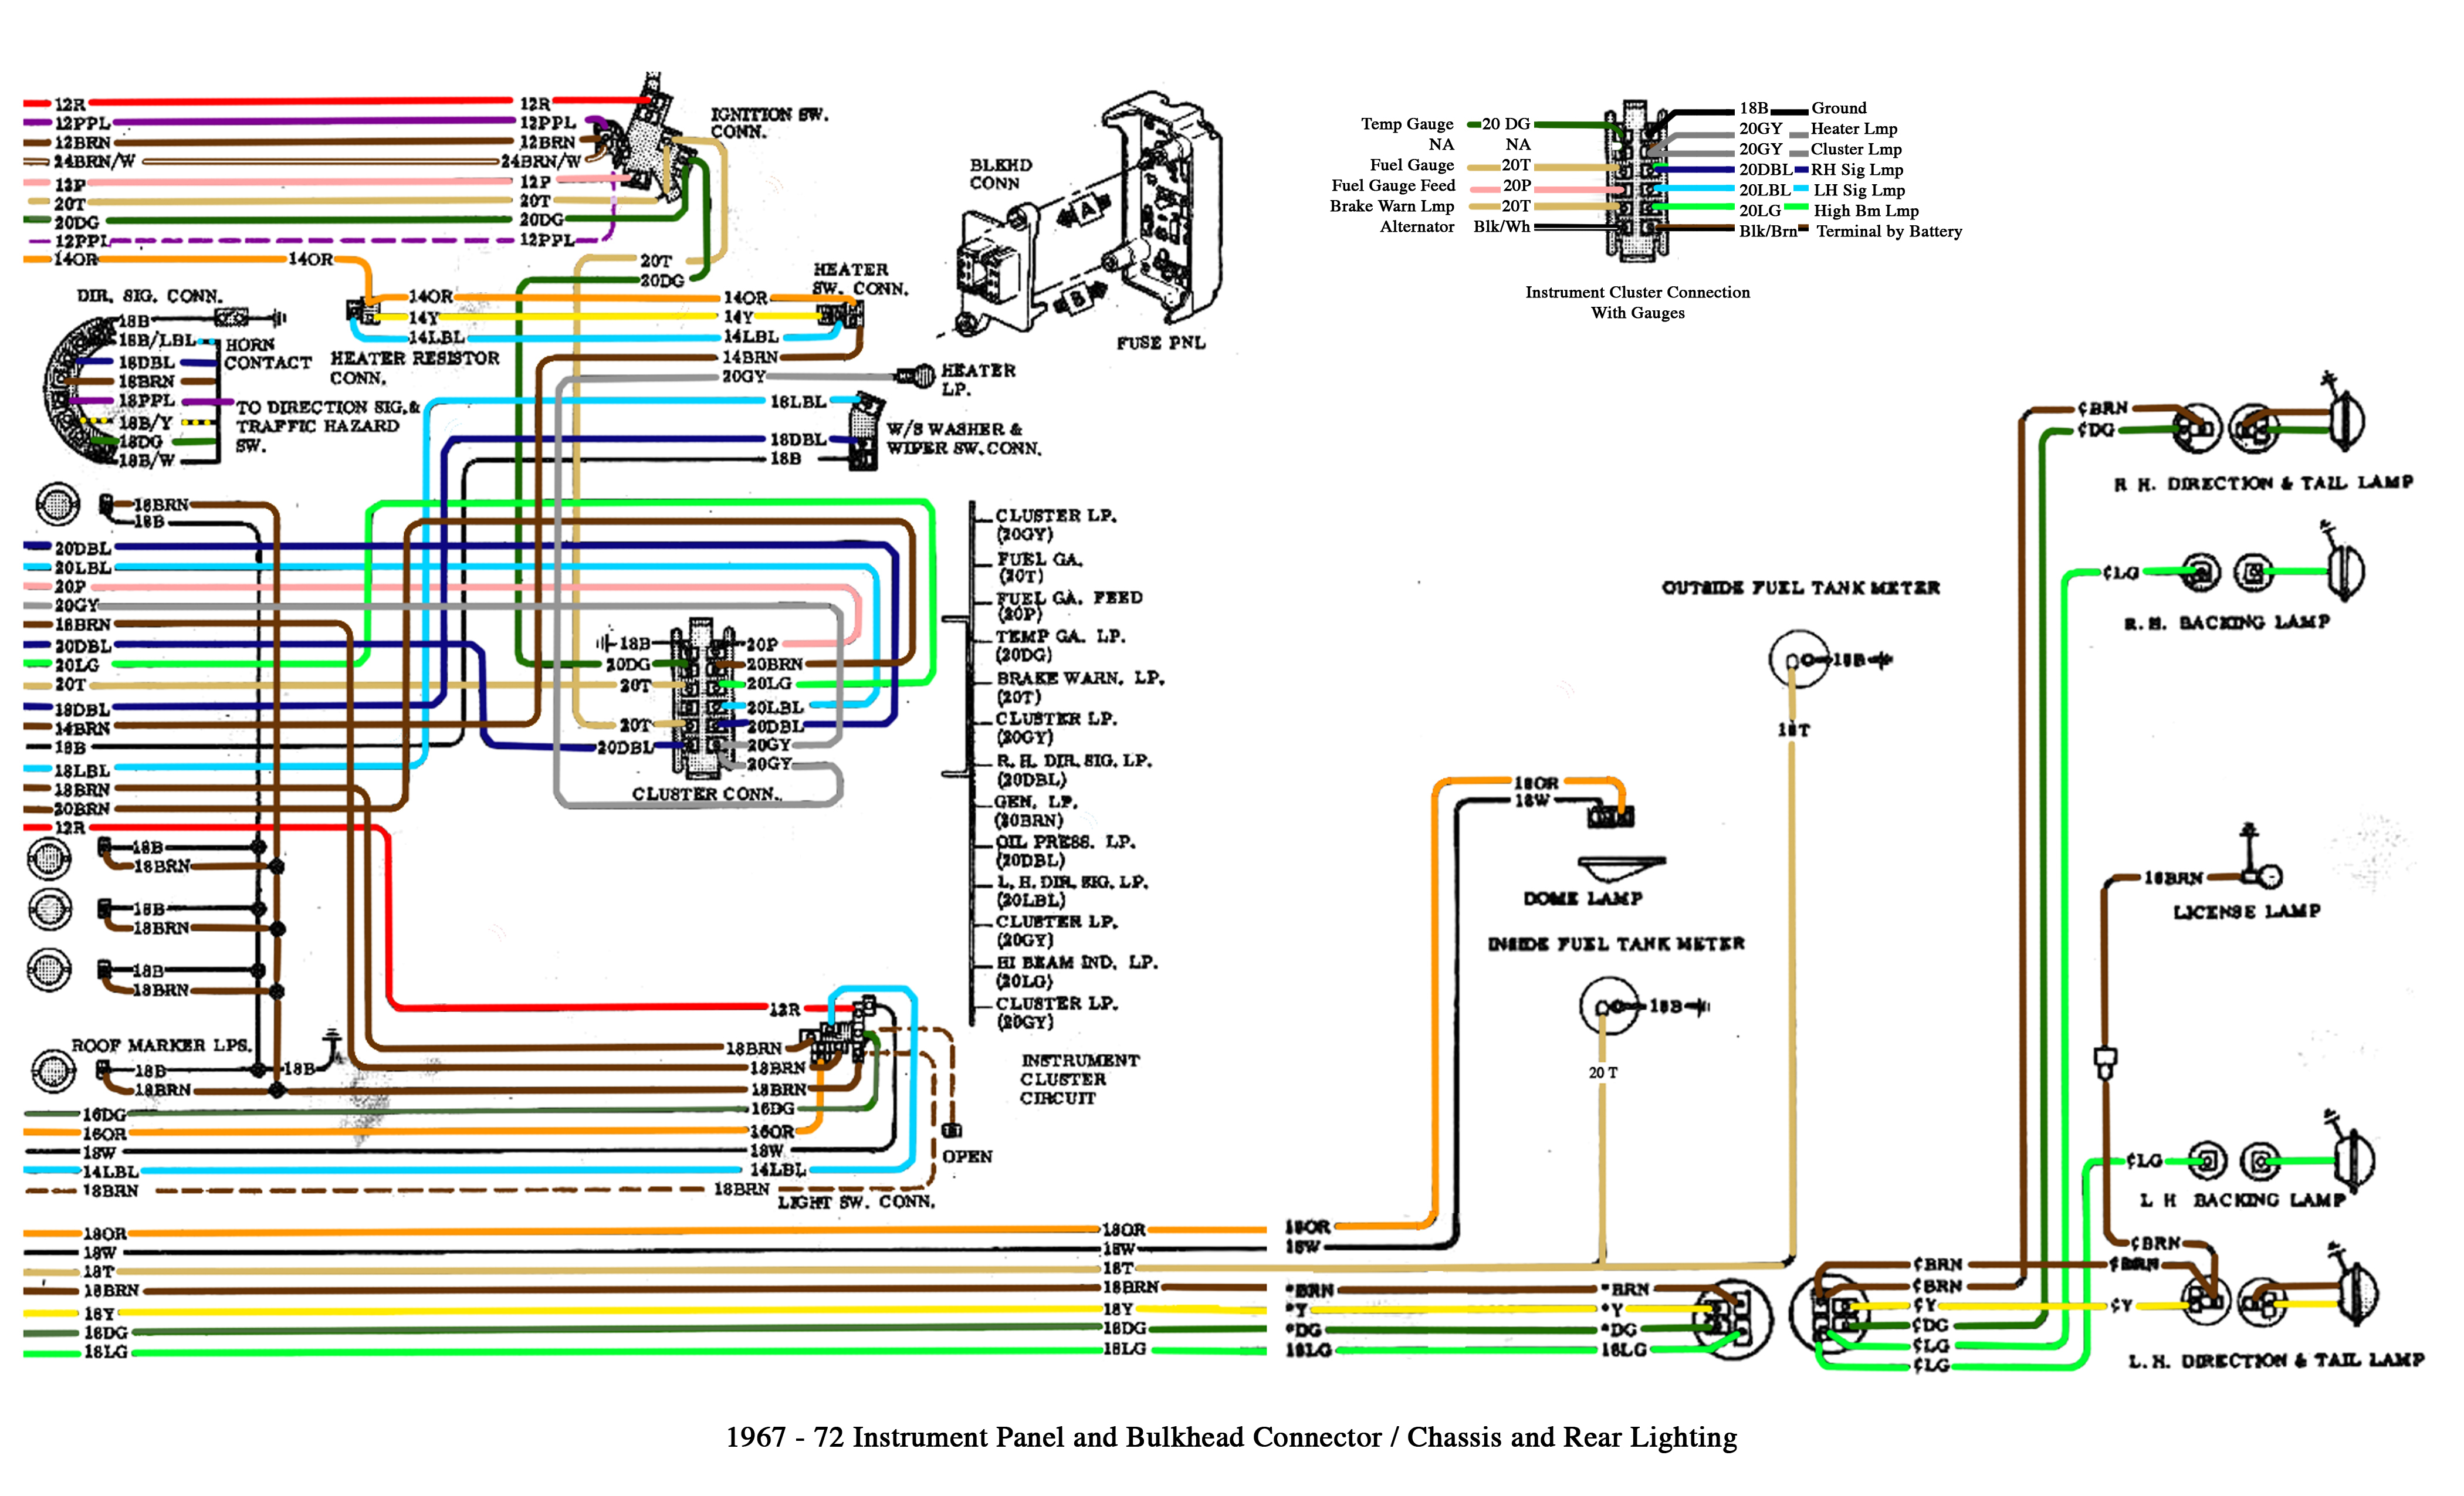 2005 Chevy Wiring Harness - Liry Wiring Diagram on 08 chevy silverado wiring diagram, 05 chevy silverado transmission, 2004 silverado wiring diagram, 05 chevy silverado frame, 2007 chevy silverado wiring diagram, 06 chevy silverado wiring diagram, 05 chevy silverado firing order, 05 chevy silverado water pump, 05 chevy silverado fuel tank, 05 chevy silverado lights, 05 chevy silverado drive shaft, 05 chevy silverado exhaust system, 05 chevy express wiring diagram, 01 chevy silverado wiring diagram, 05 chevy silverado wheels, 05 chevy silverado parts, 04 chevy silverado wiring diagram, 05 chevy silverado bleed brakes, 02 chevy silverado wiring diagram, 05 chevy silverado oil pump,